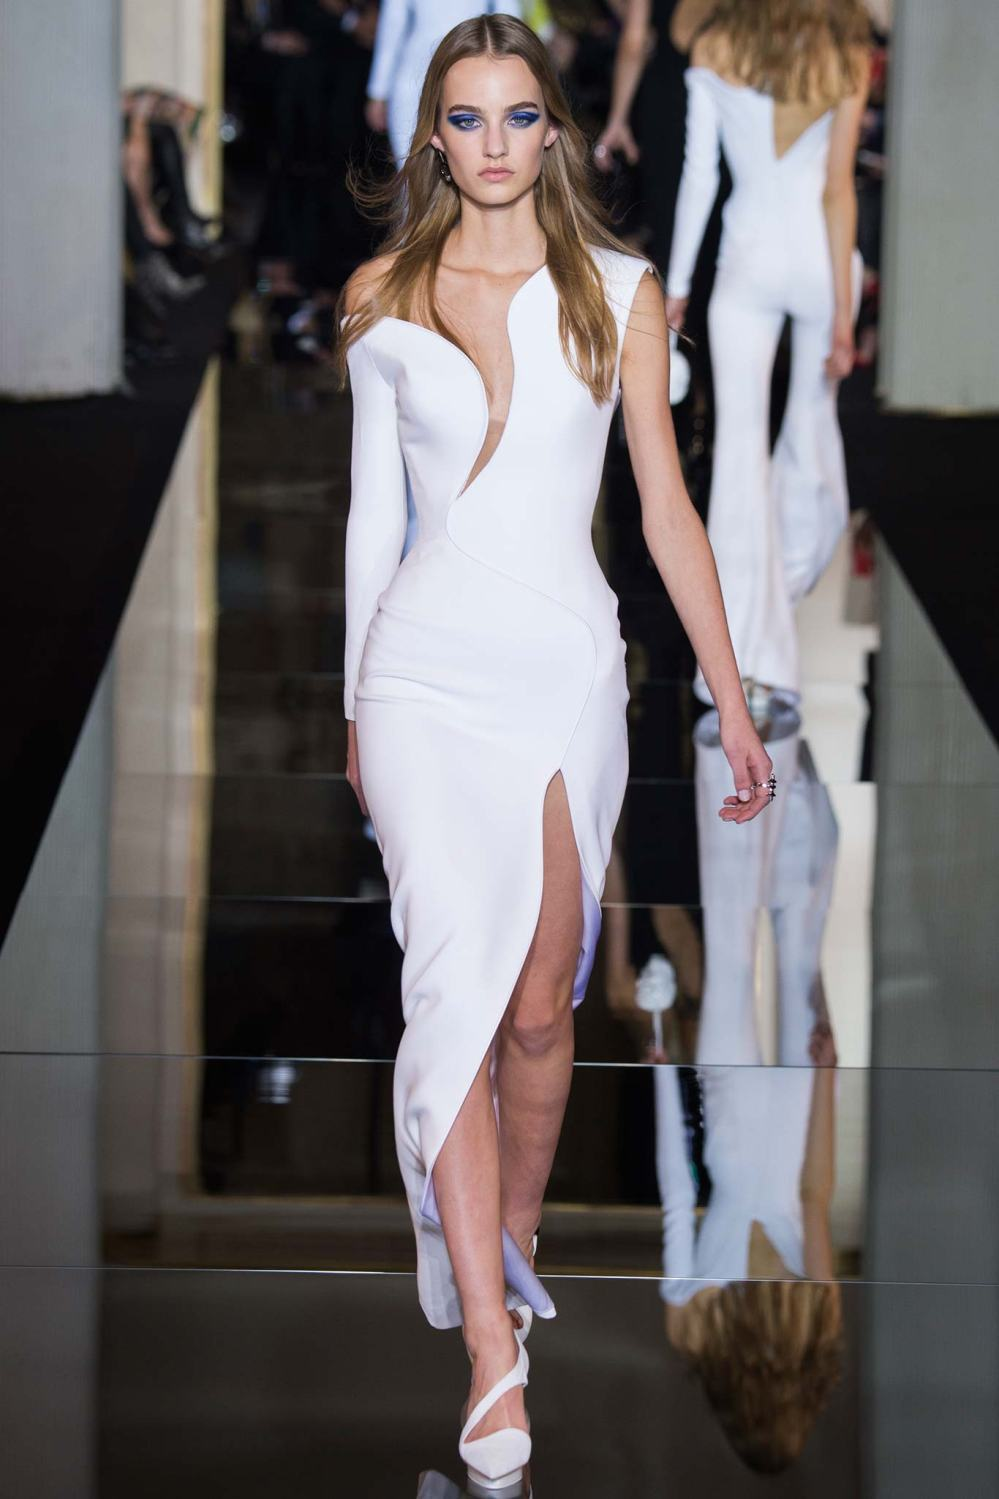 Atelier Versace, Spring/Summer 2015 Look 5 Model : Maarje Verhoef Photo: Kim Weston Arnold/Indigitalimages.com